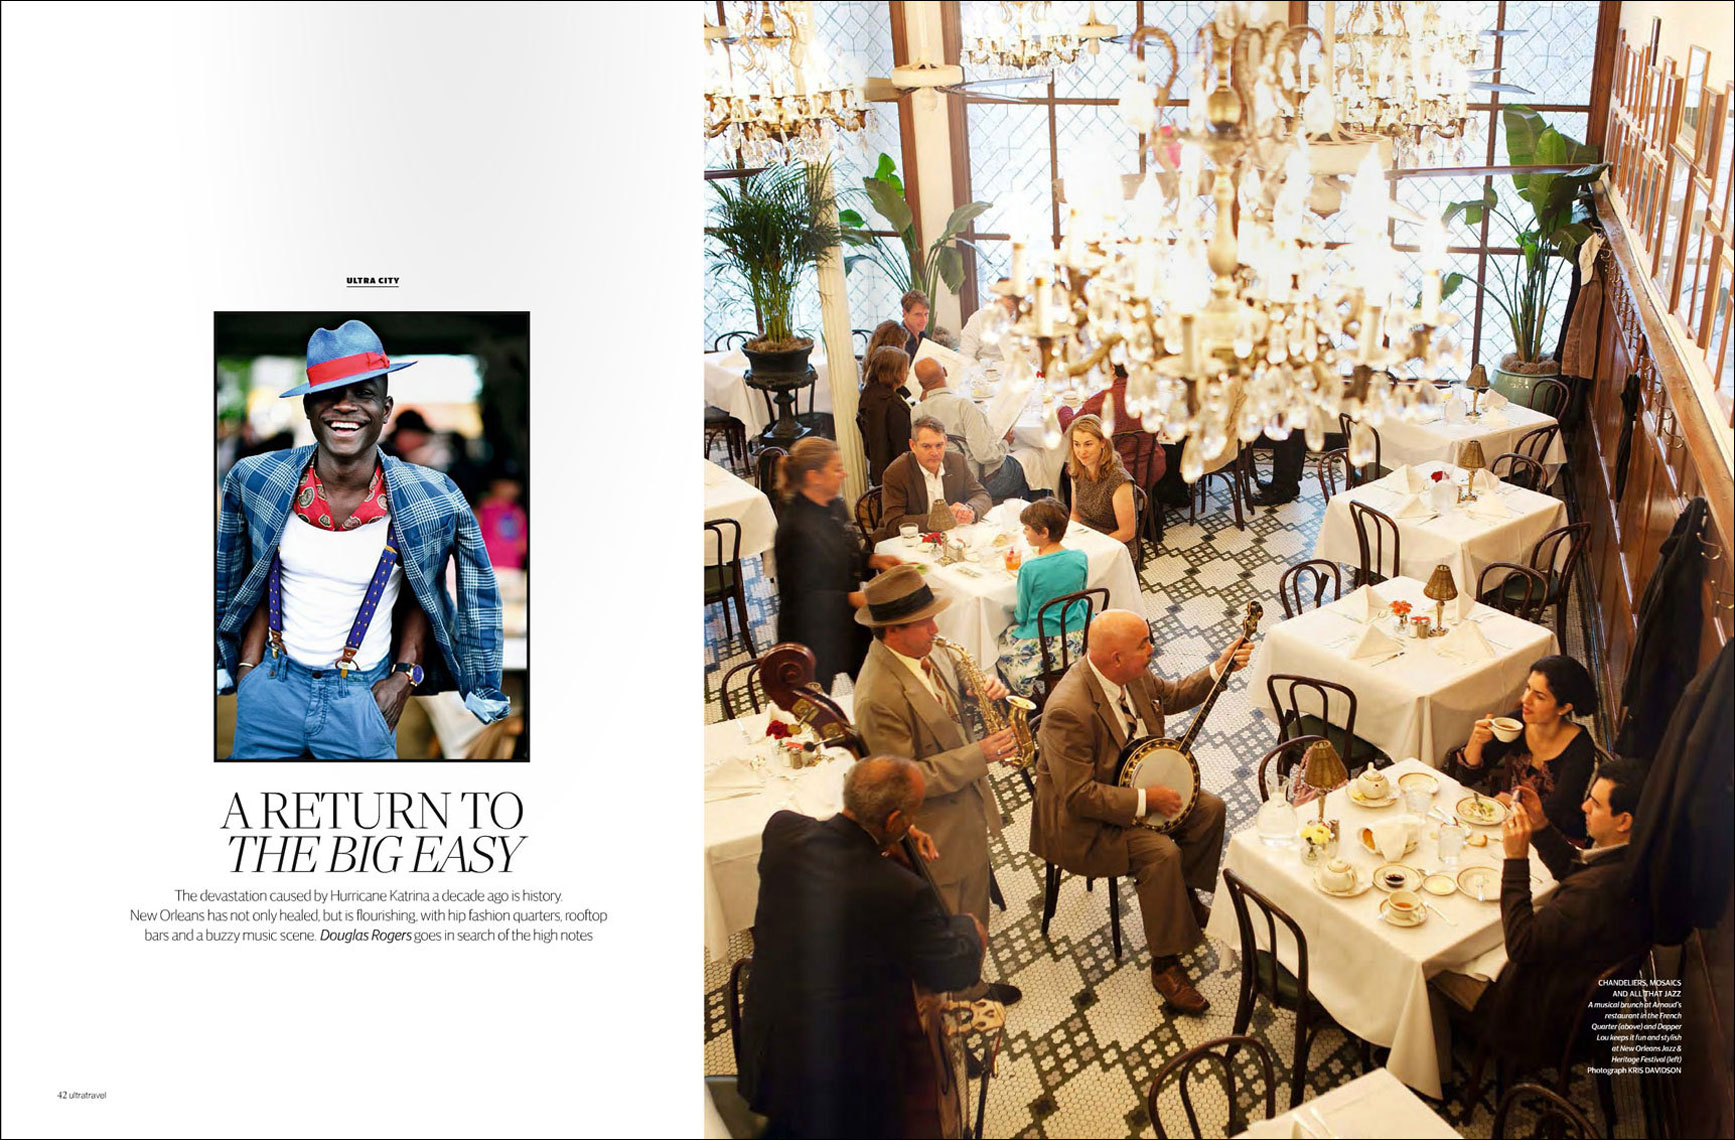 Kris_Davidson_Artist_Photographer_Ultratravel_New_Orleans